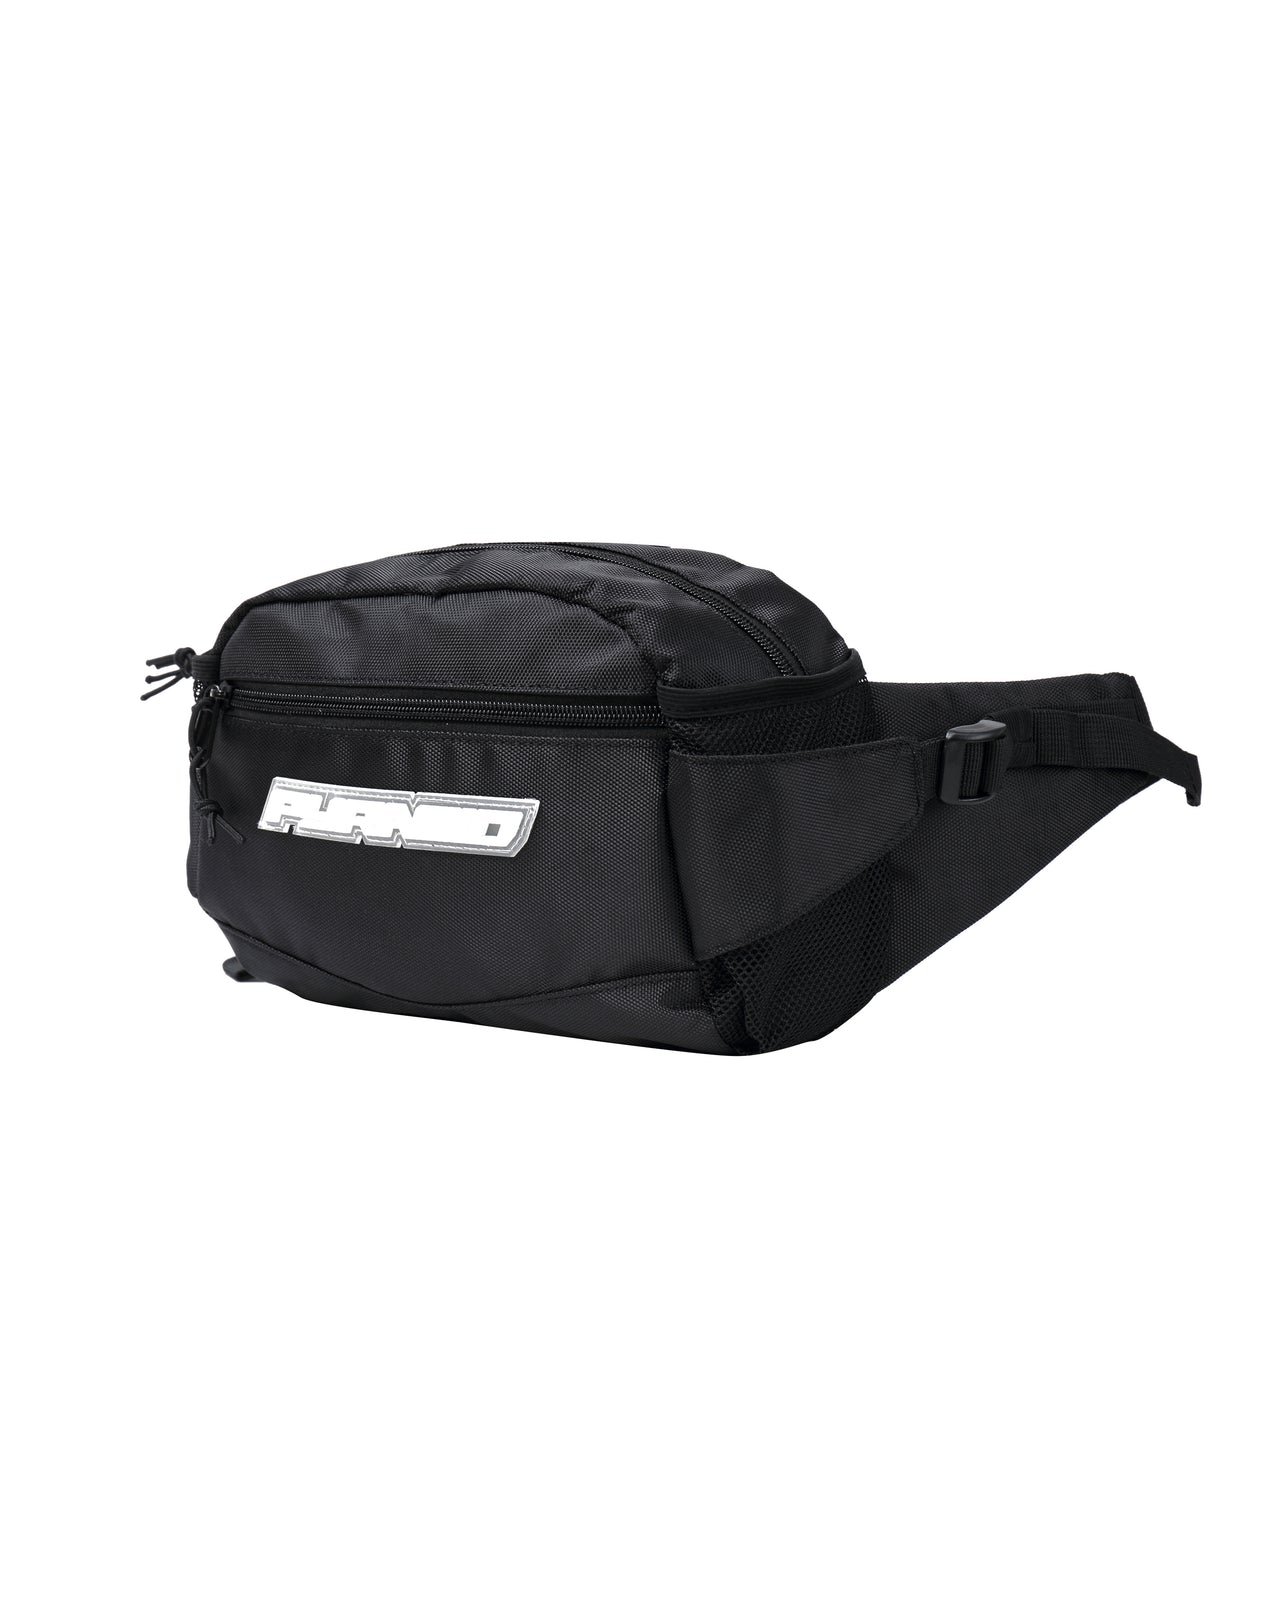 TECH SLING BAG - Colors: BLACK